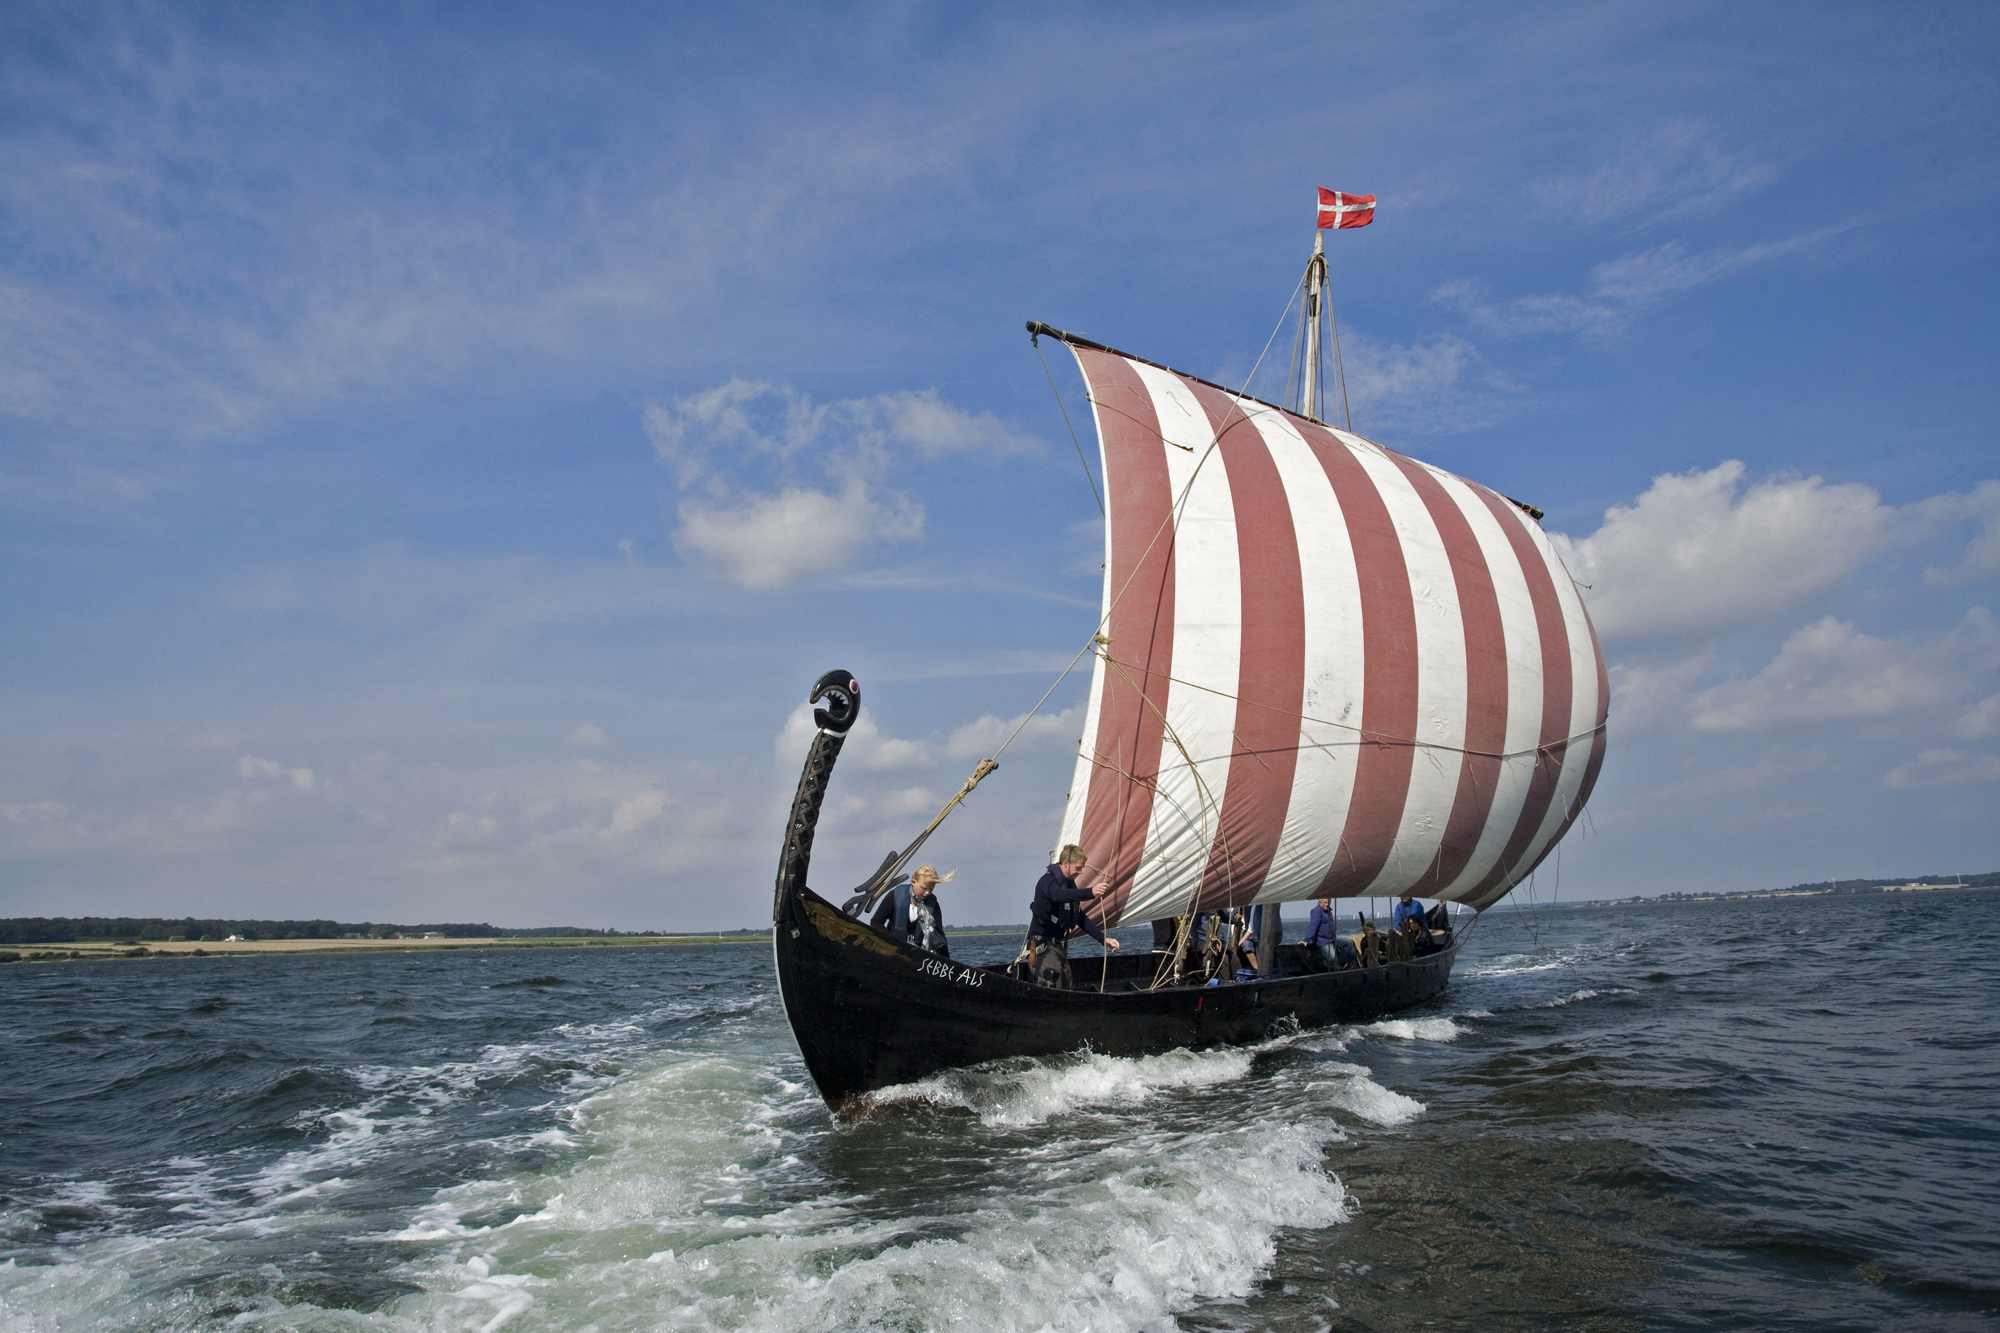 Viking for a day – Help launch a viking warship - Hej Sønderborg